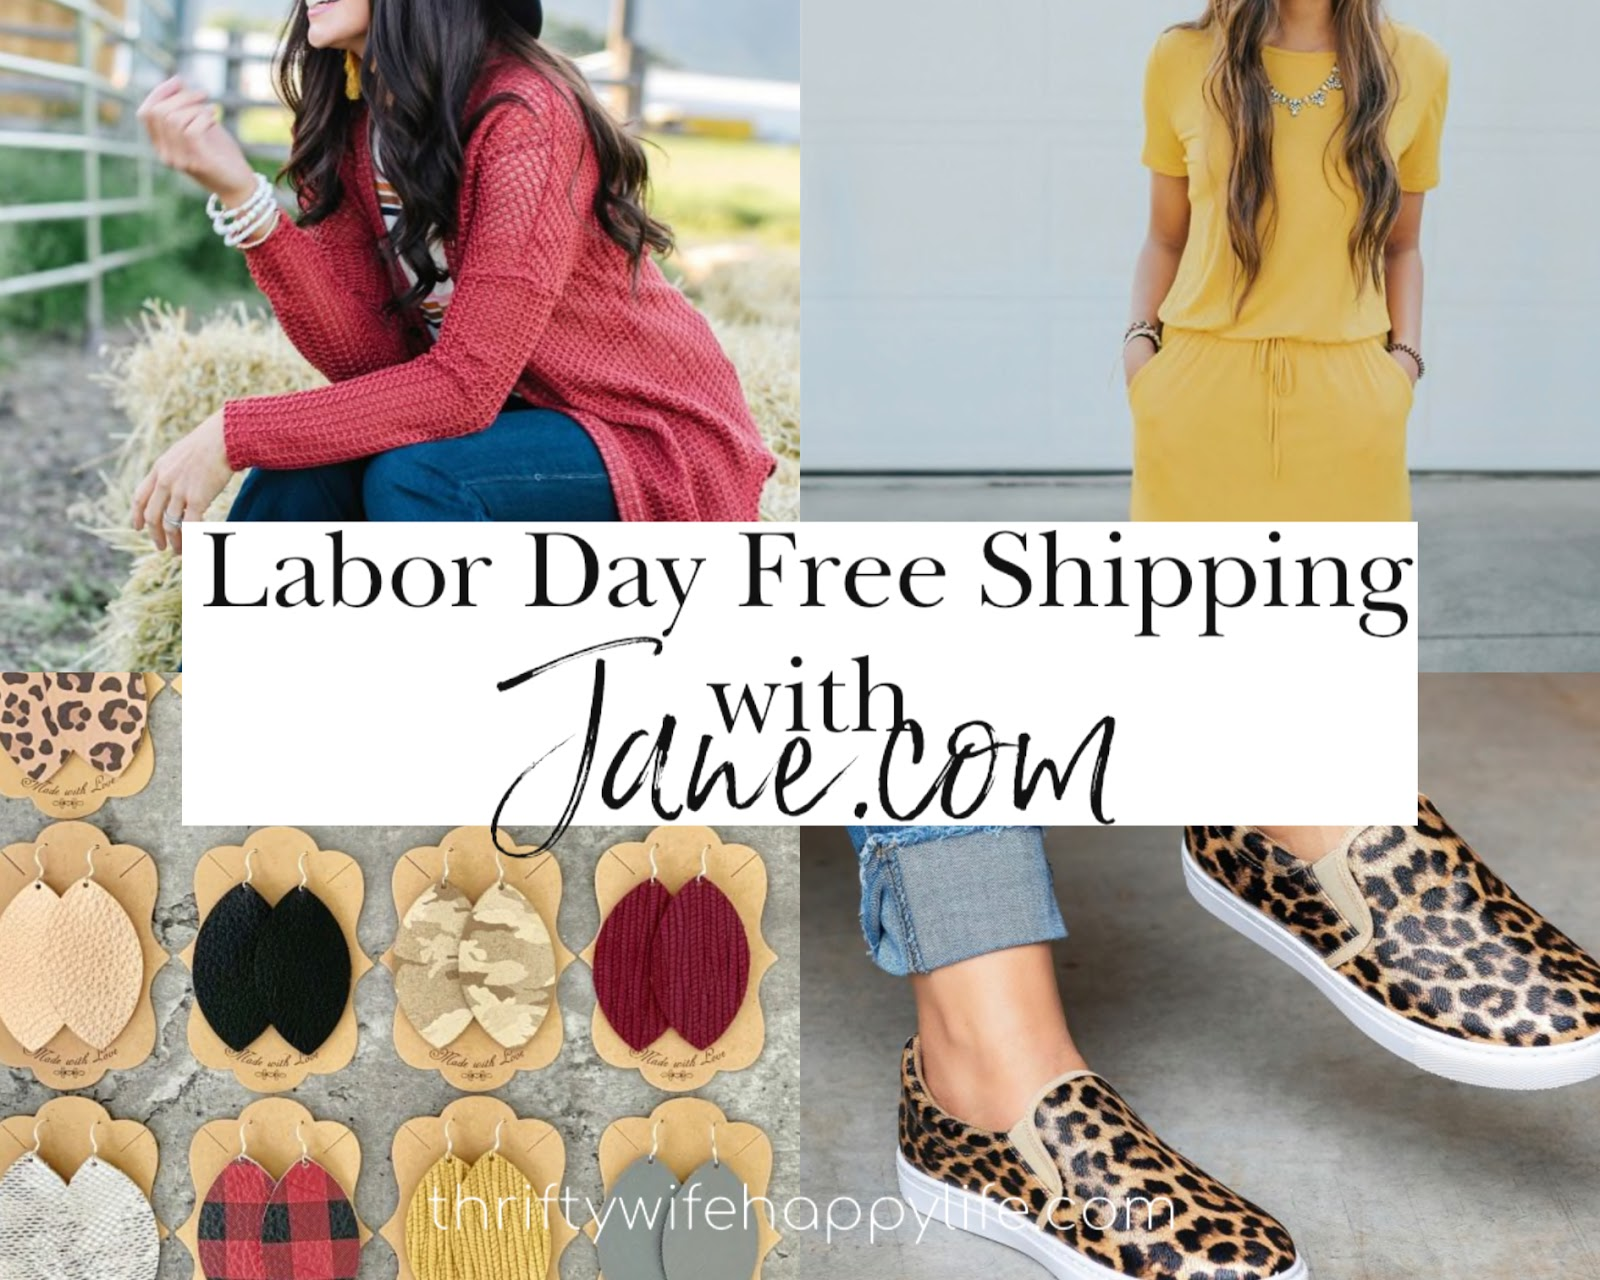 Labor Day Free Shipping Event with Jane.com